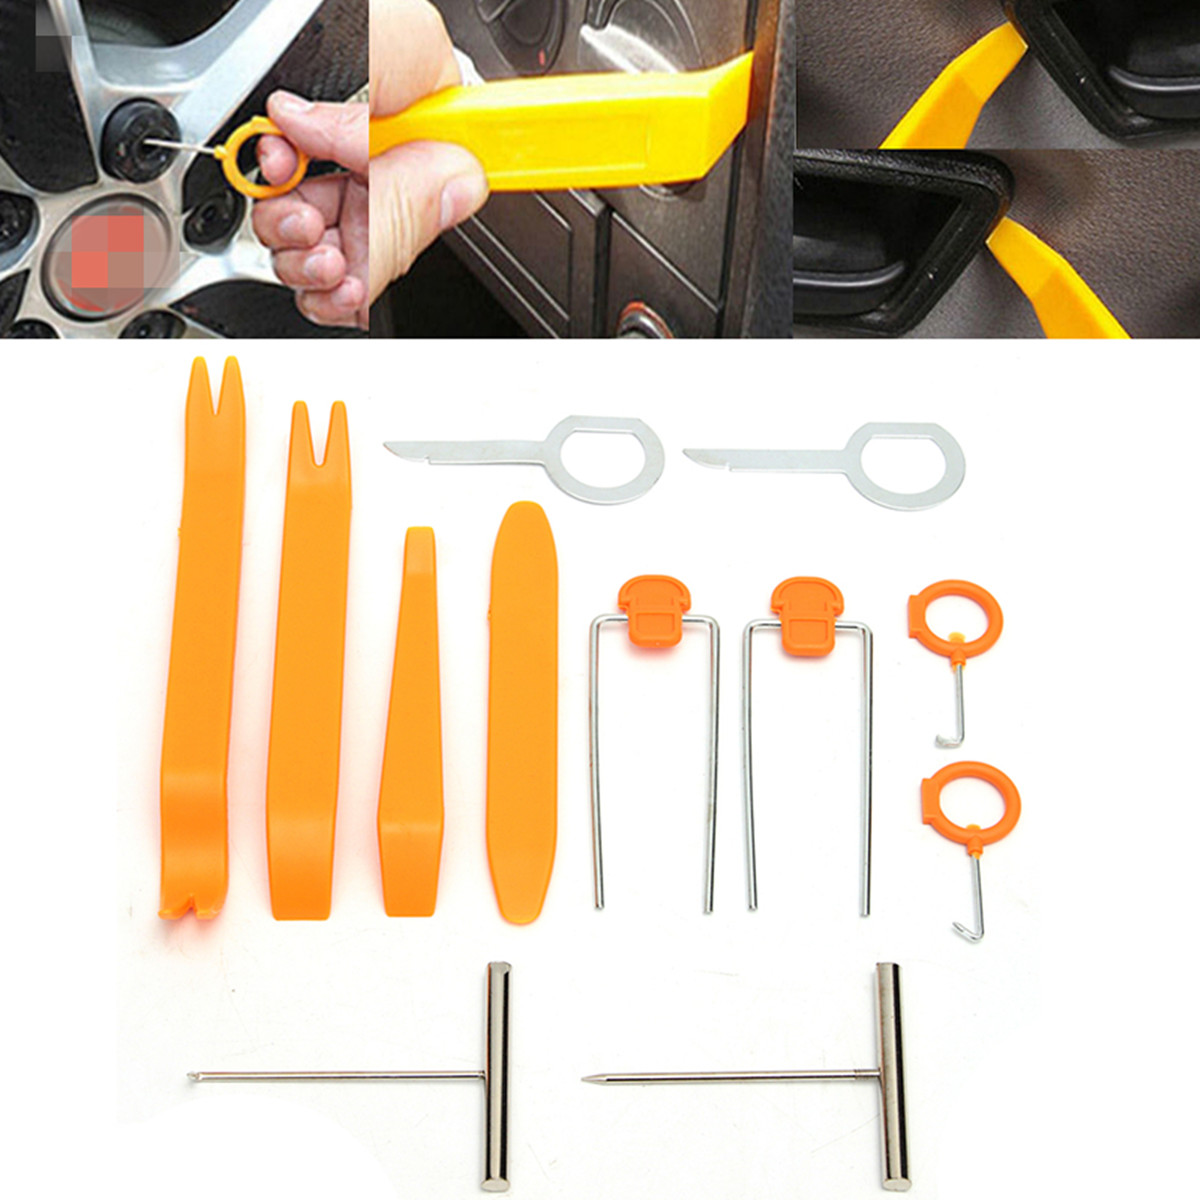 12 X Car Audio Stereo Open Pry Tools Removal Kit For Dash Door Radio Trim Panel